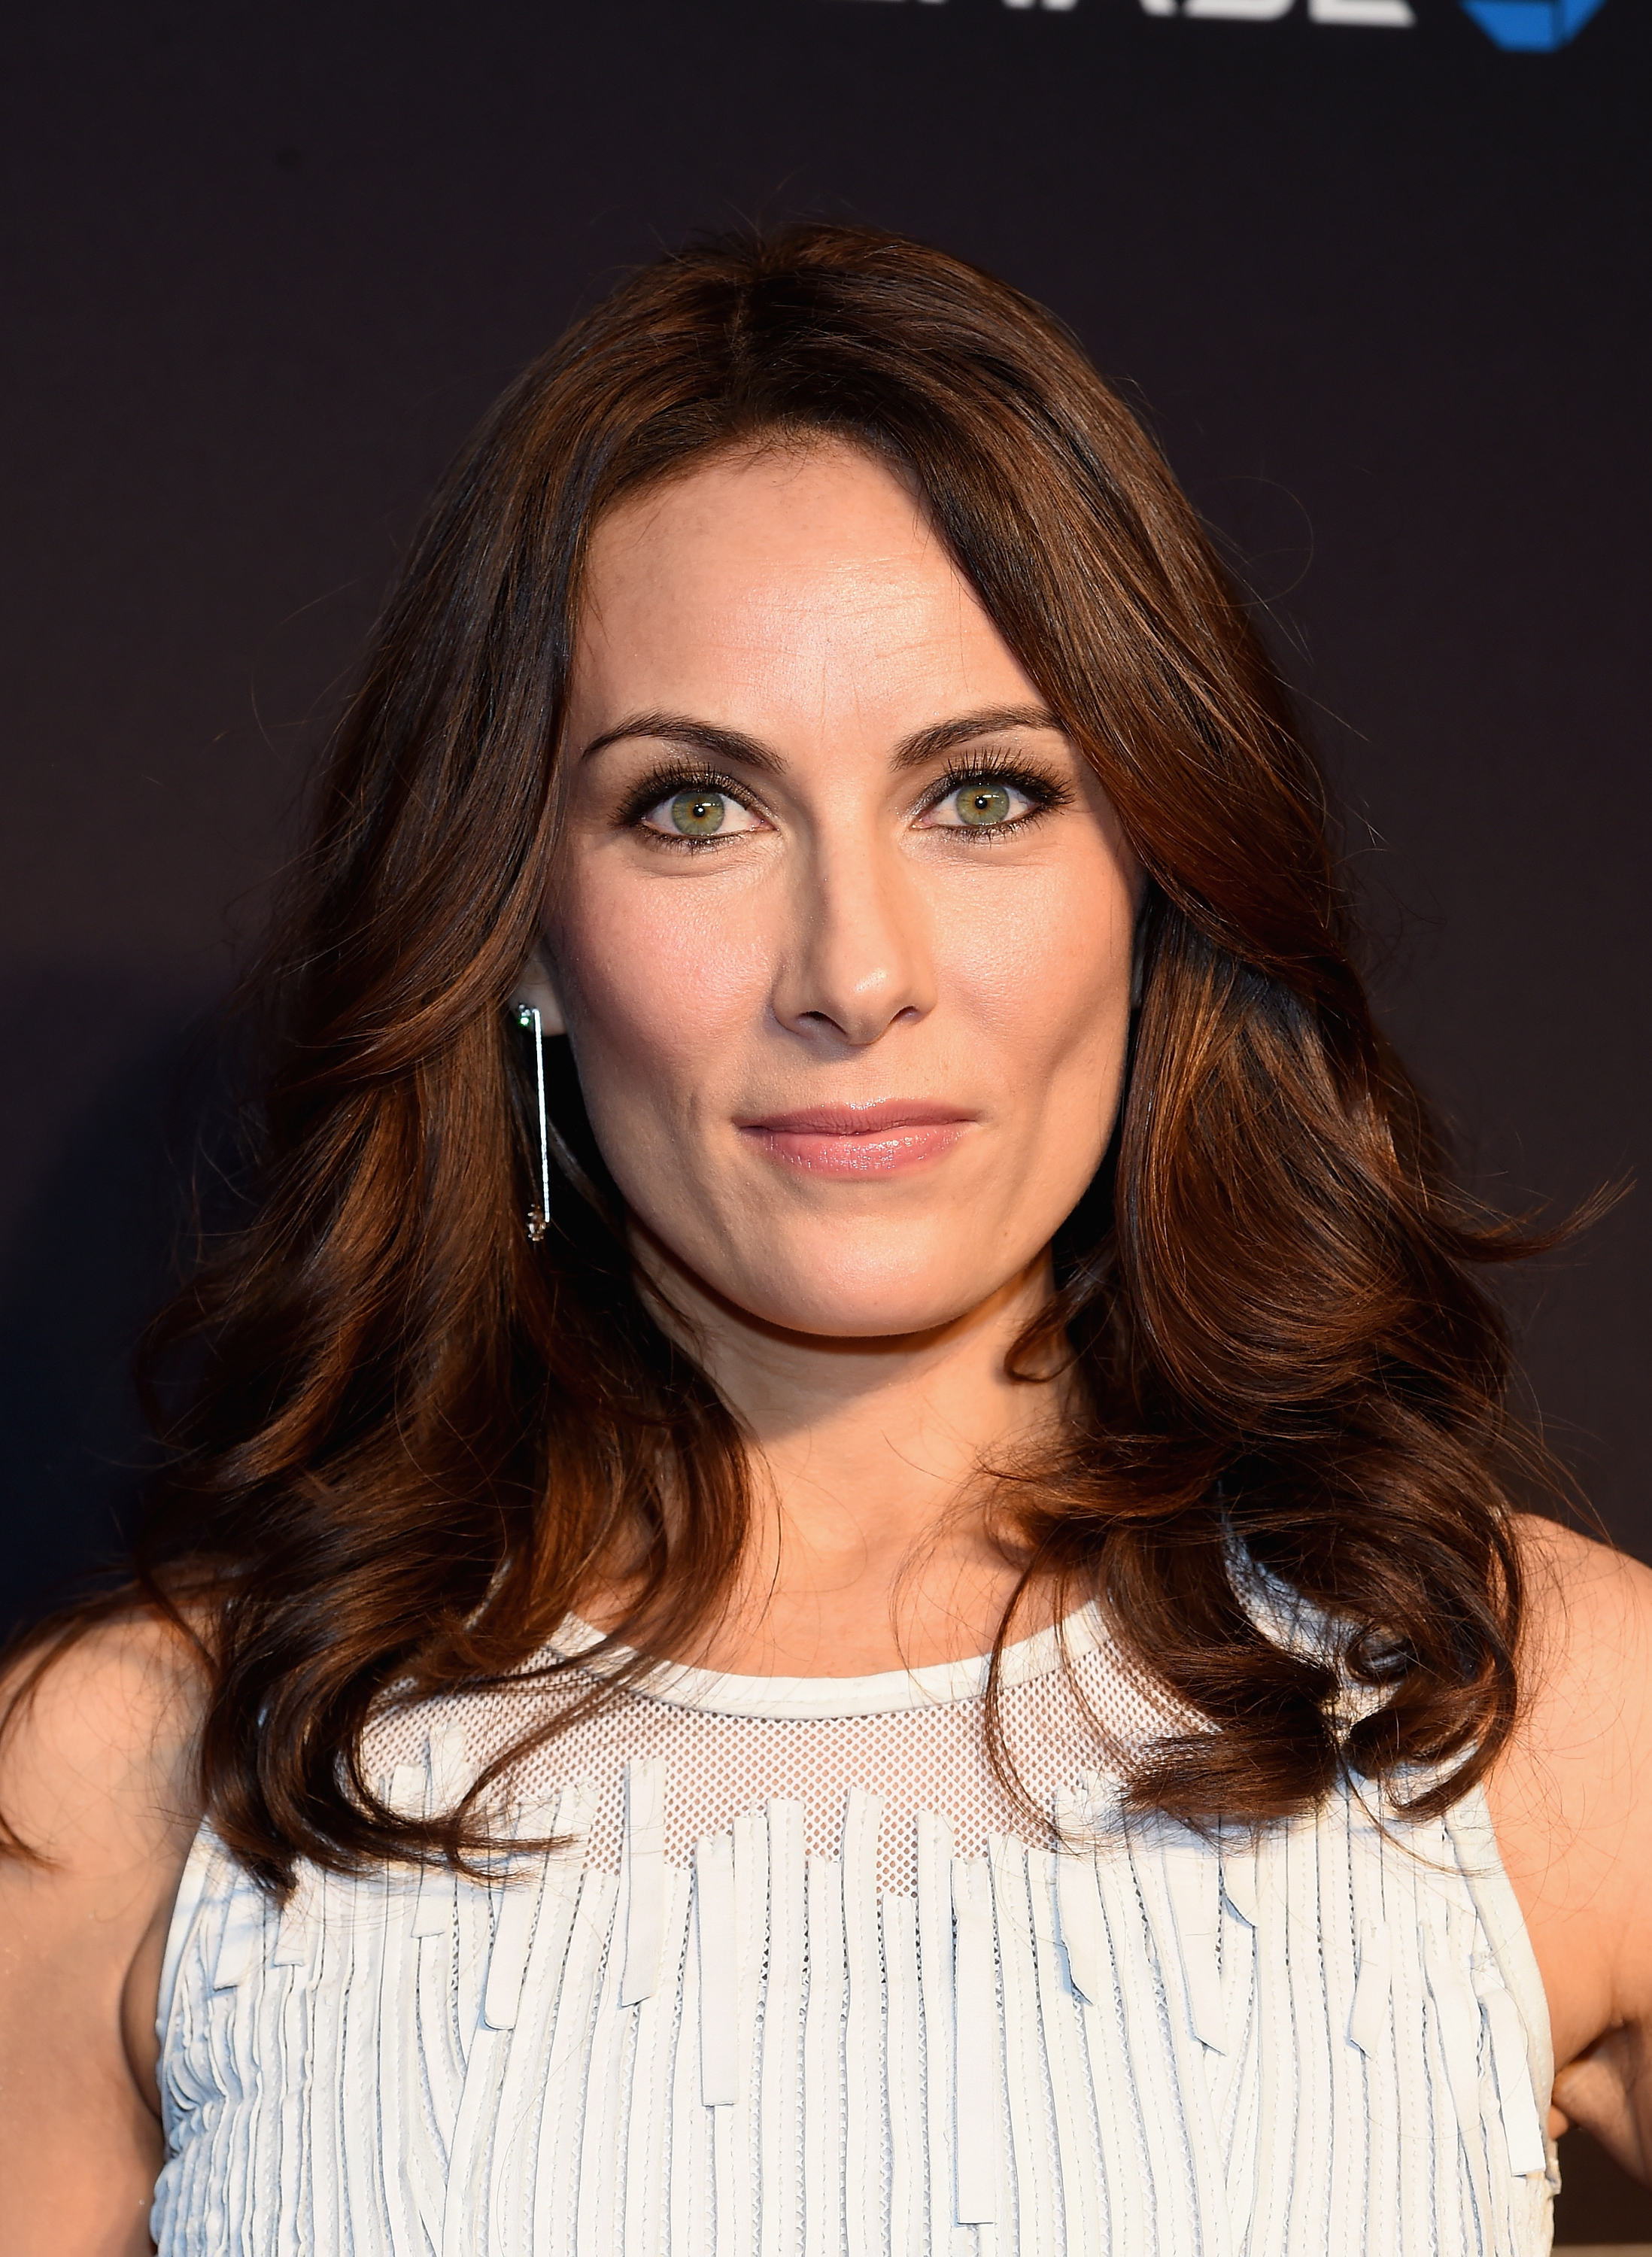 naked Laura Benanti (75 pictures) Pussy, Instagram, braless